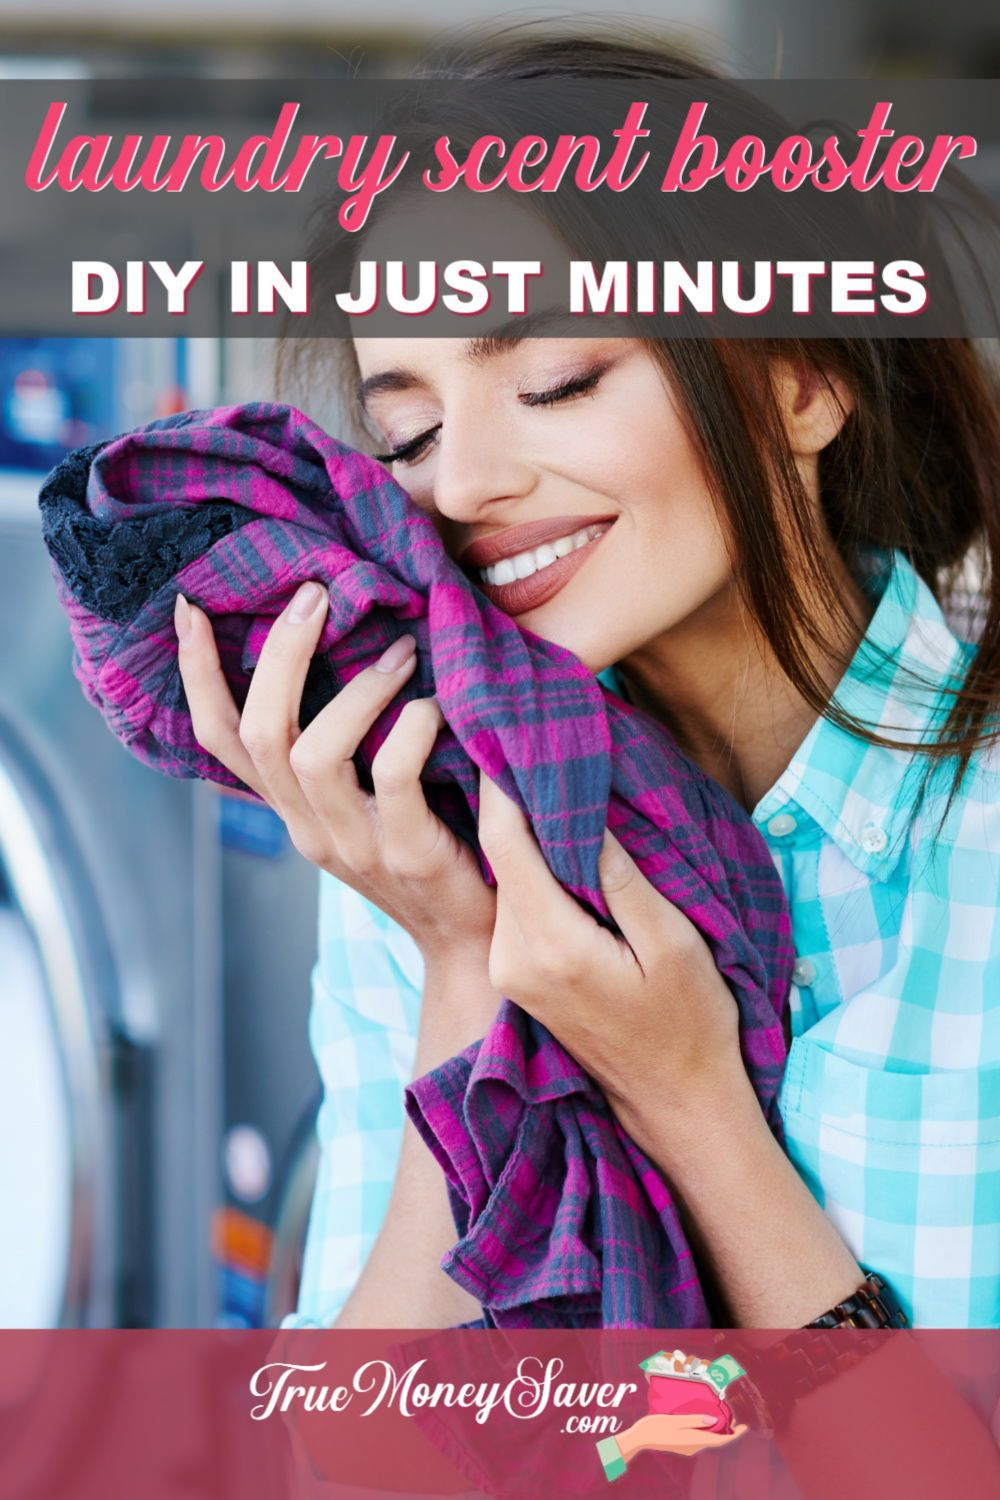 The Best Laundry Stain Remover To Get Your Clothes Super